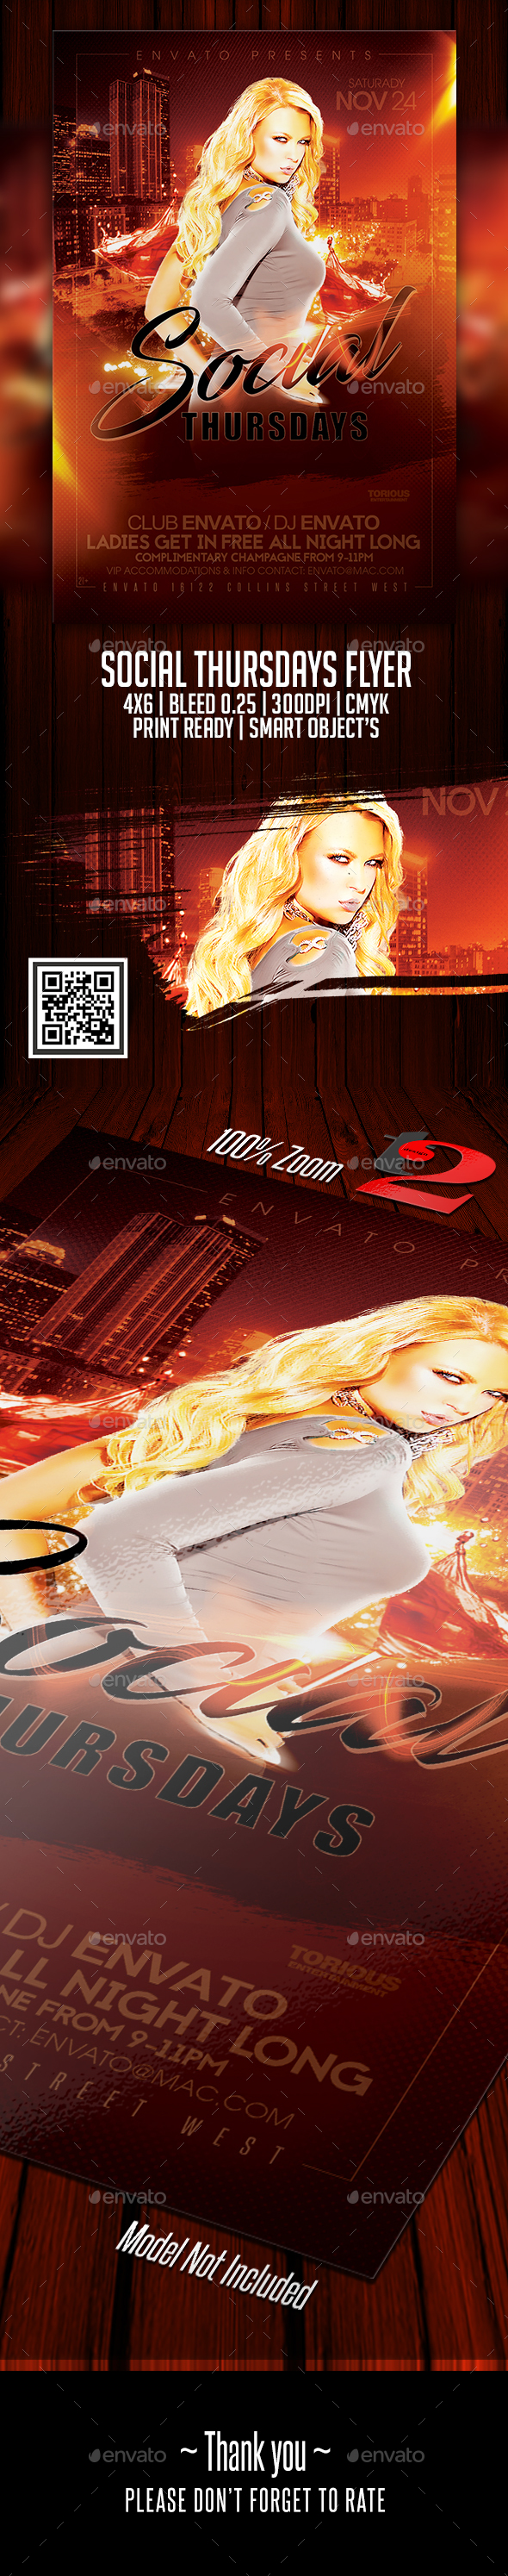 Social Thursdays Flyer Template - Clubs & Parties Events